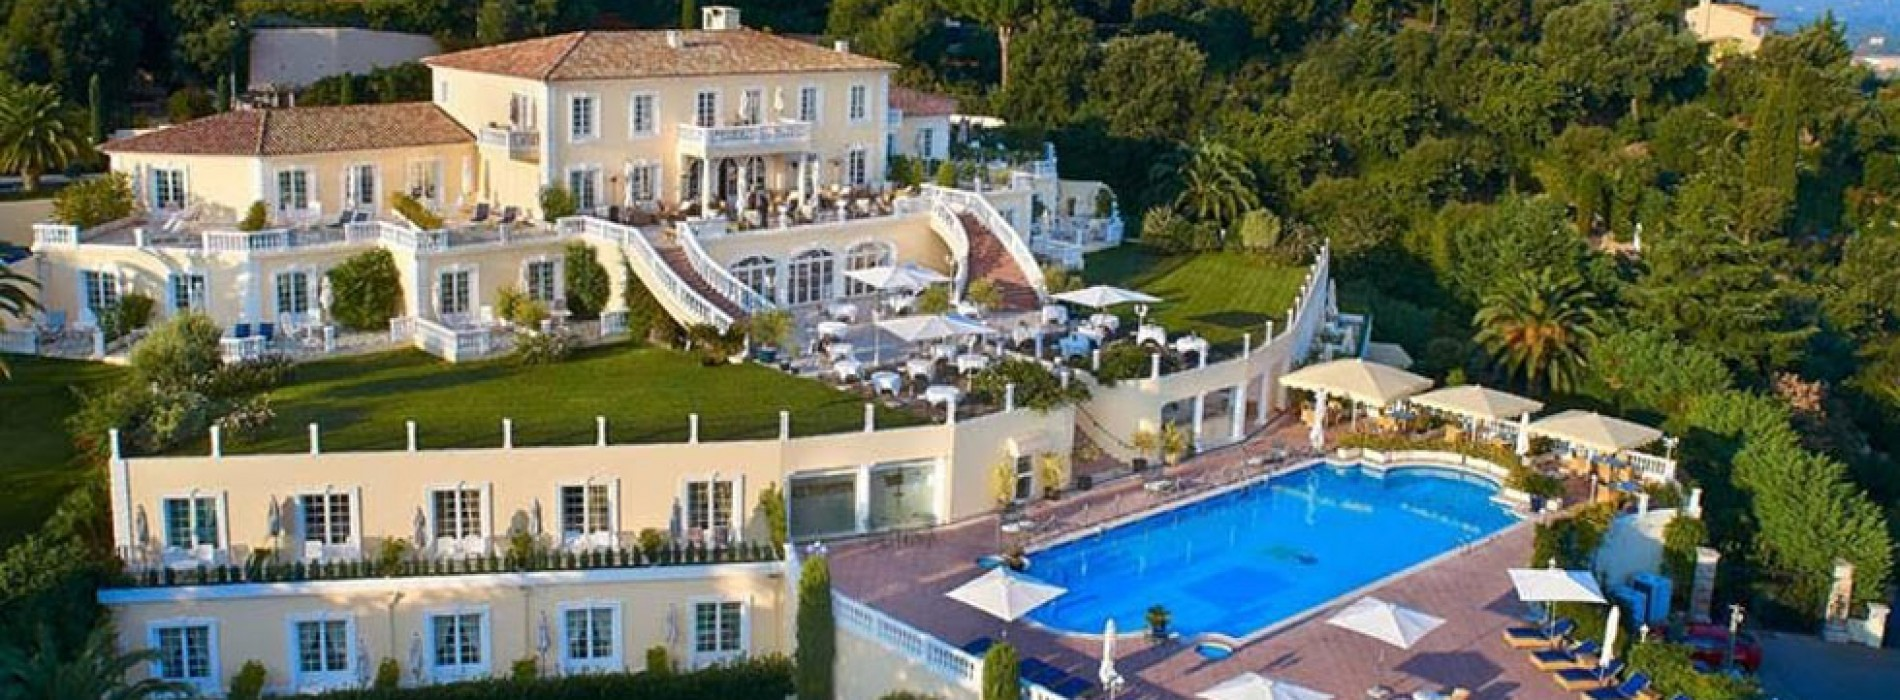 Althoff hotel villa belrose in saint tropez joins small for Small luxury hotels of the world list